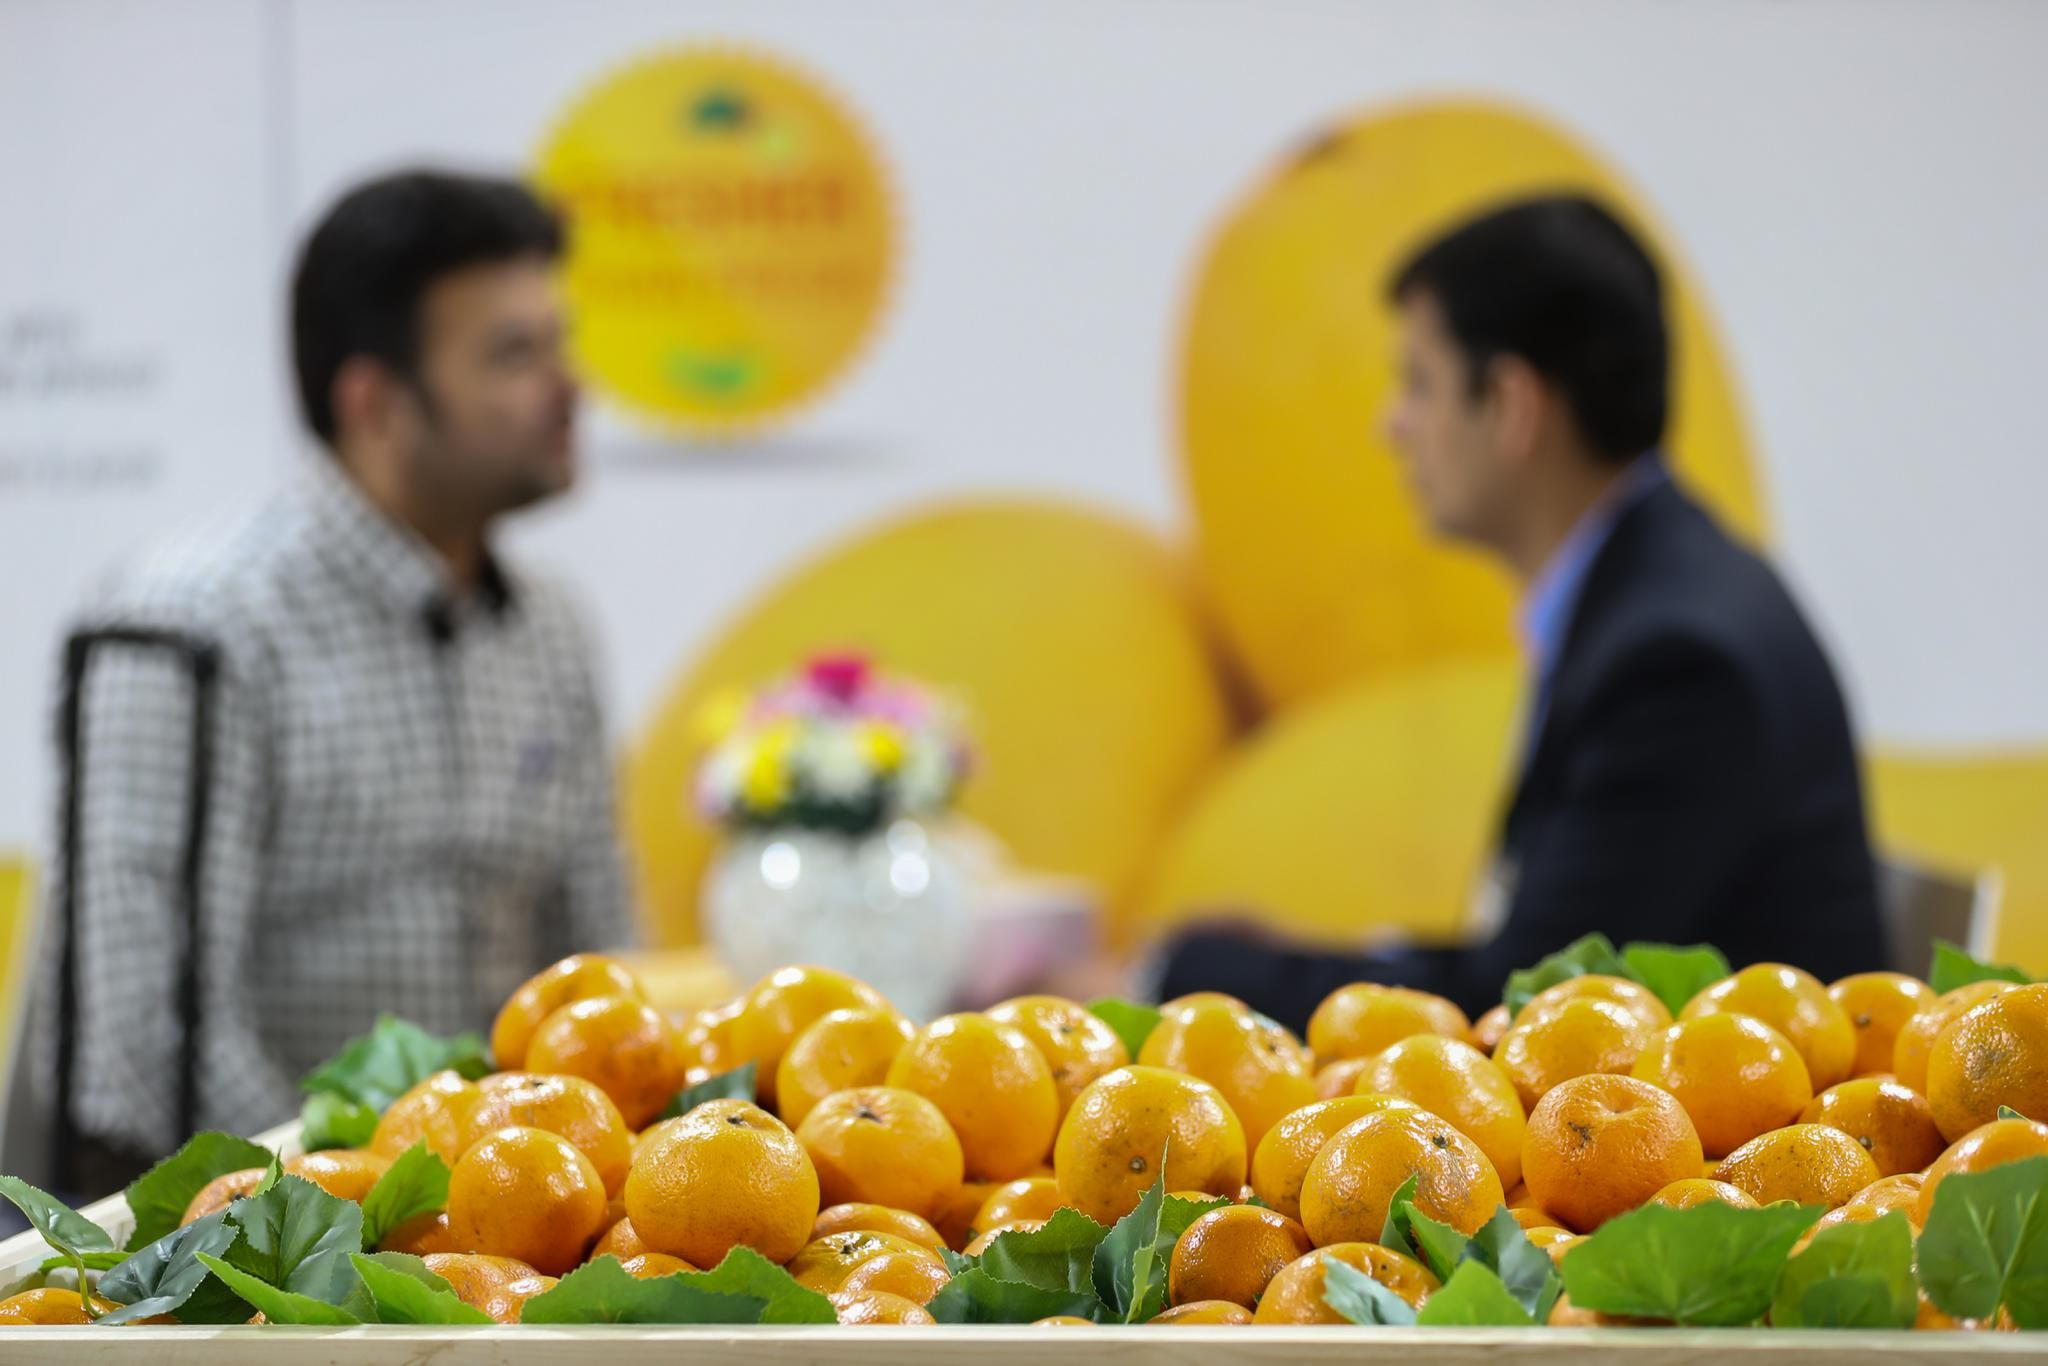 Dubai welcomes your innovations for #ZeroFoodWaste